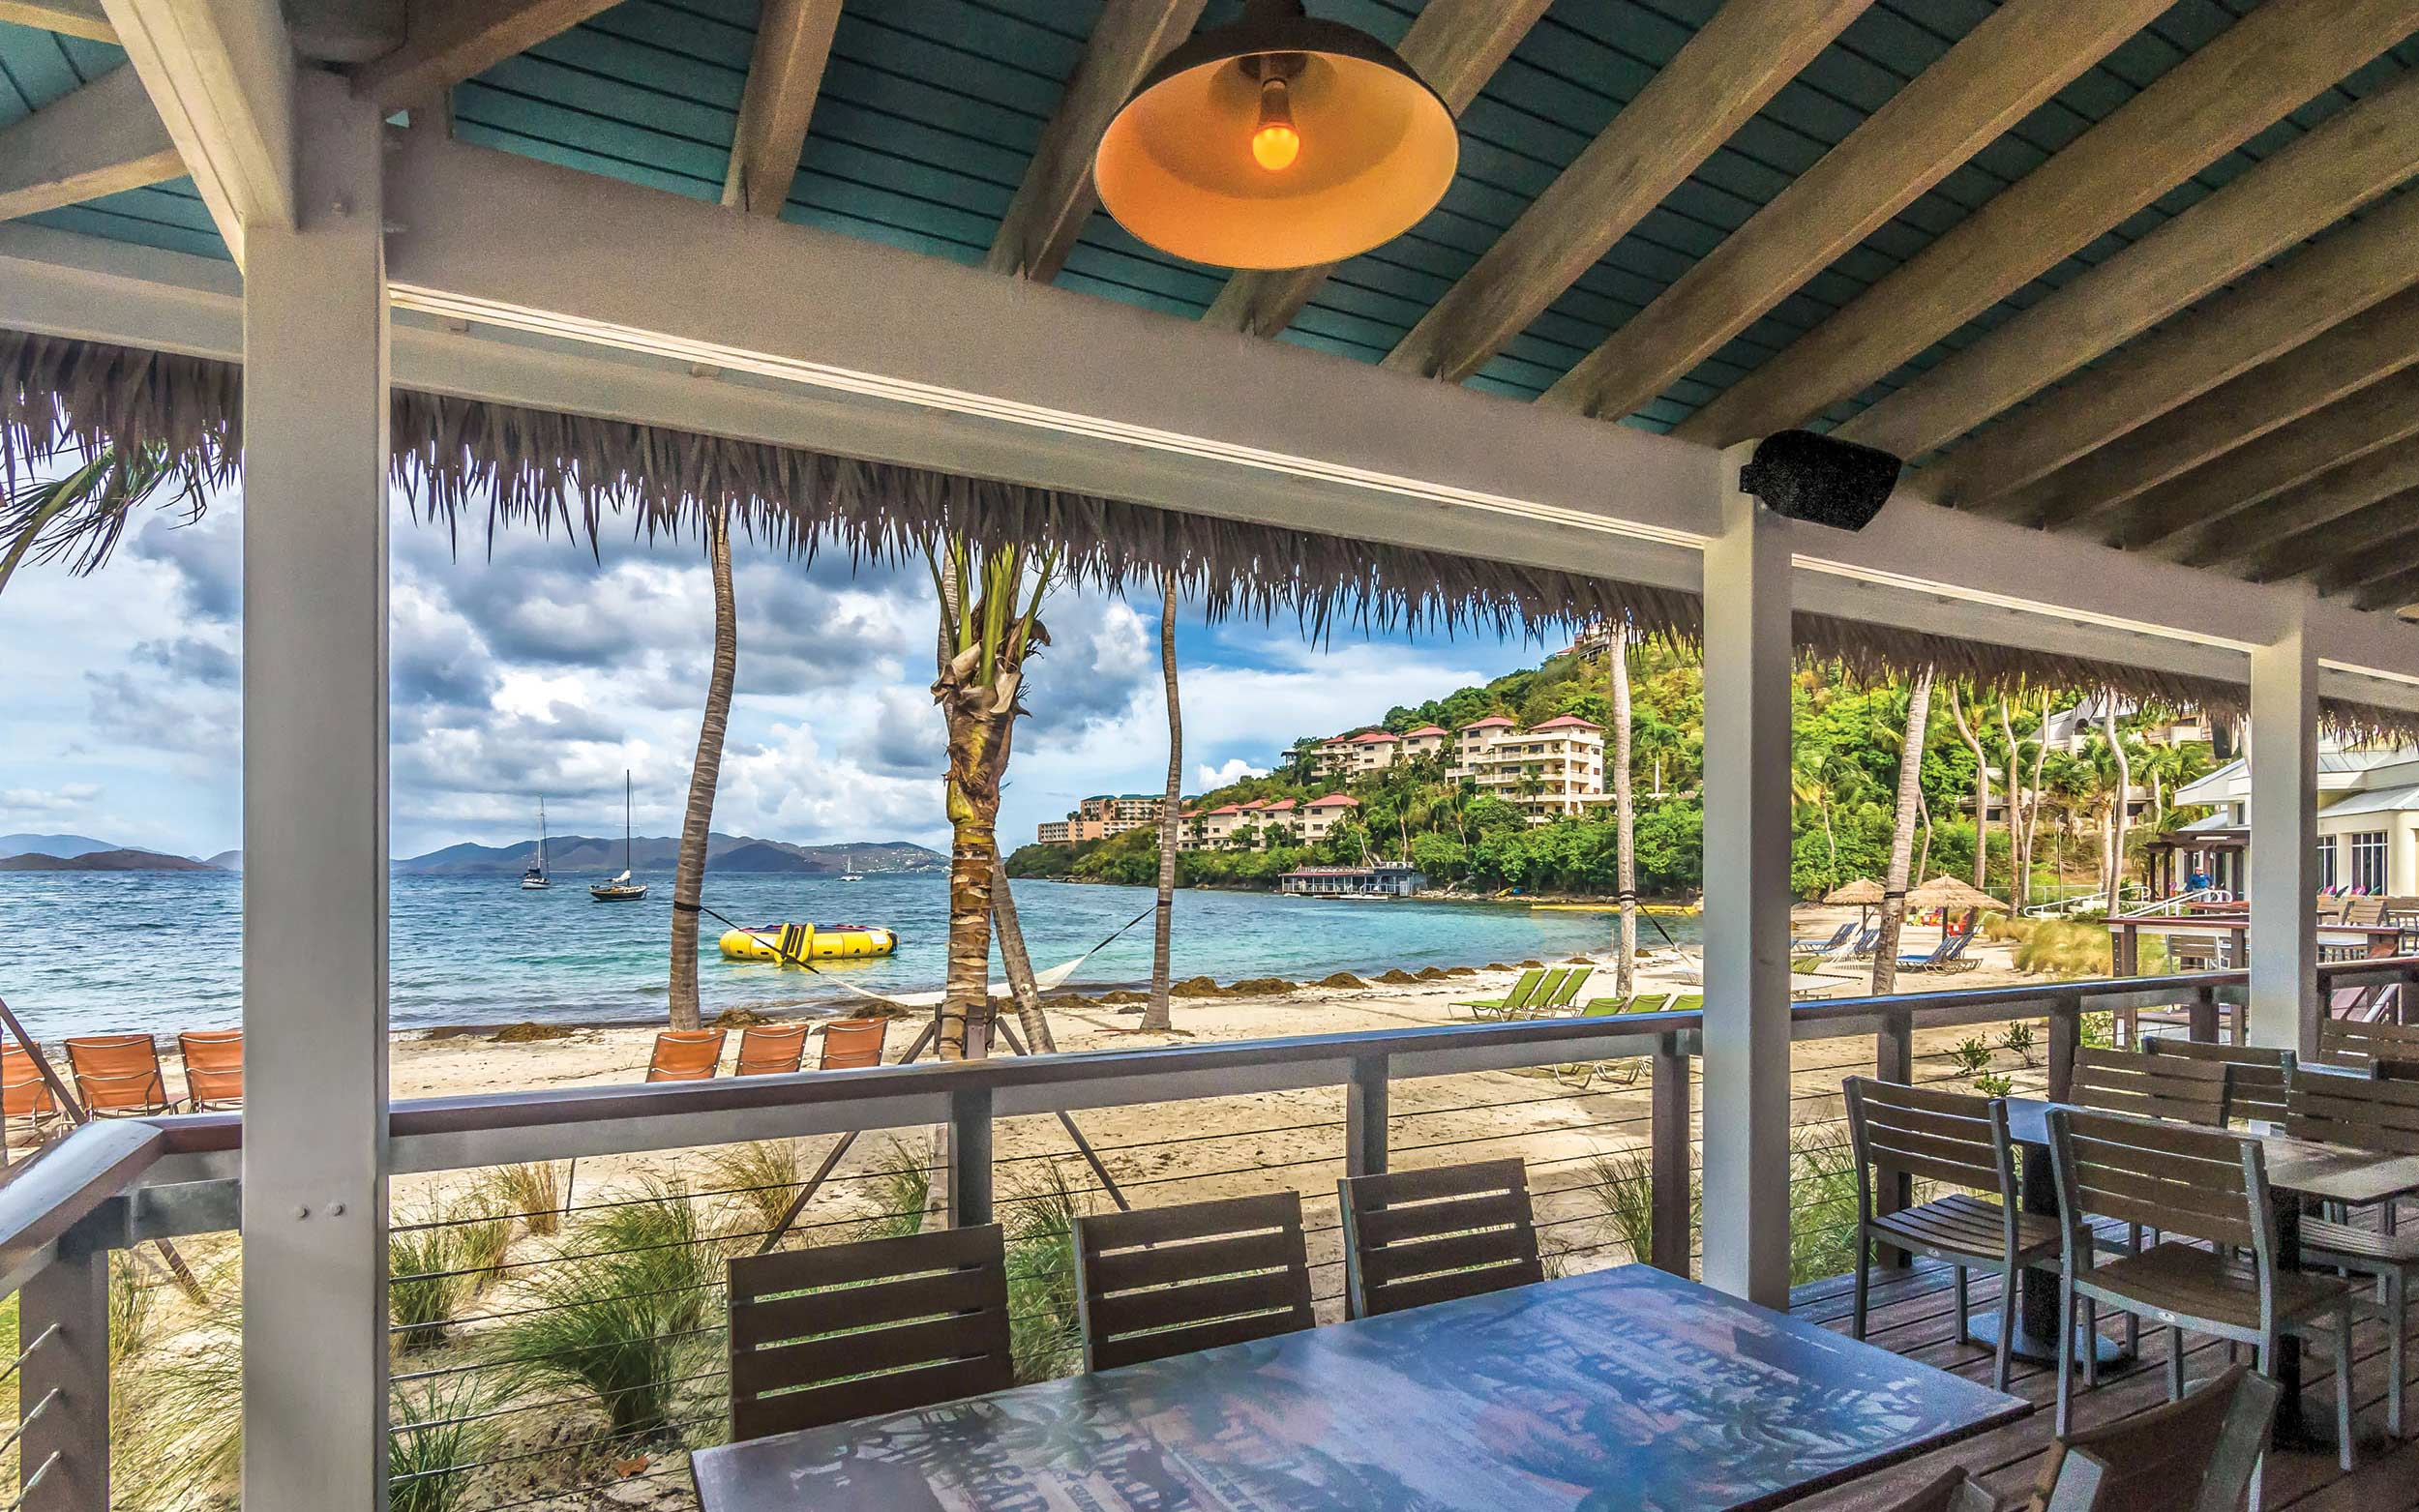 mgvc_st_thomas_restaurant_bar_3_1445616112_248.jpg